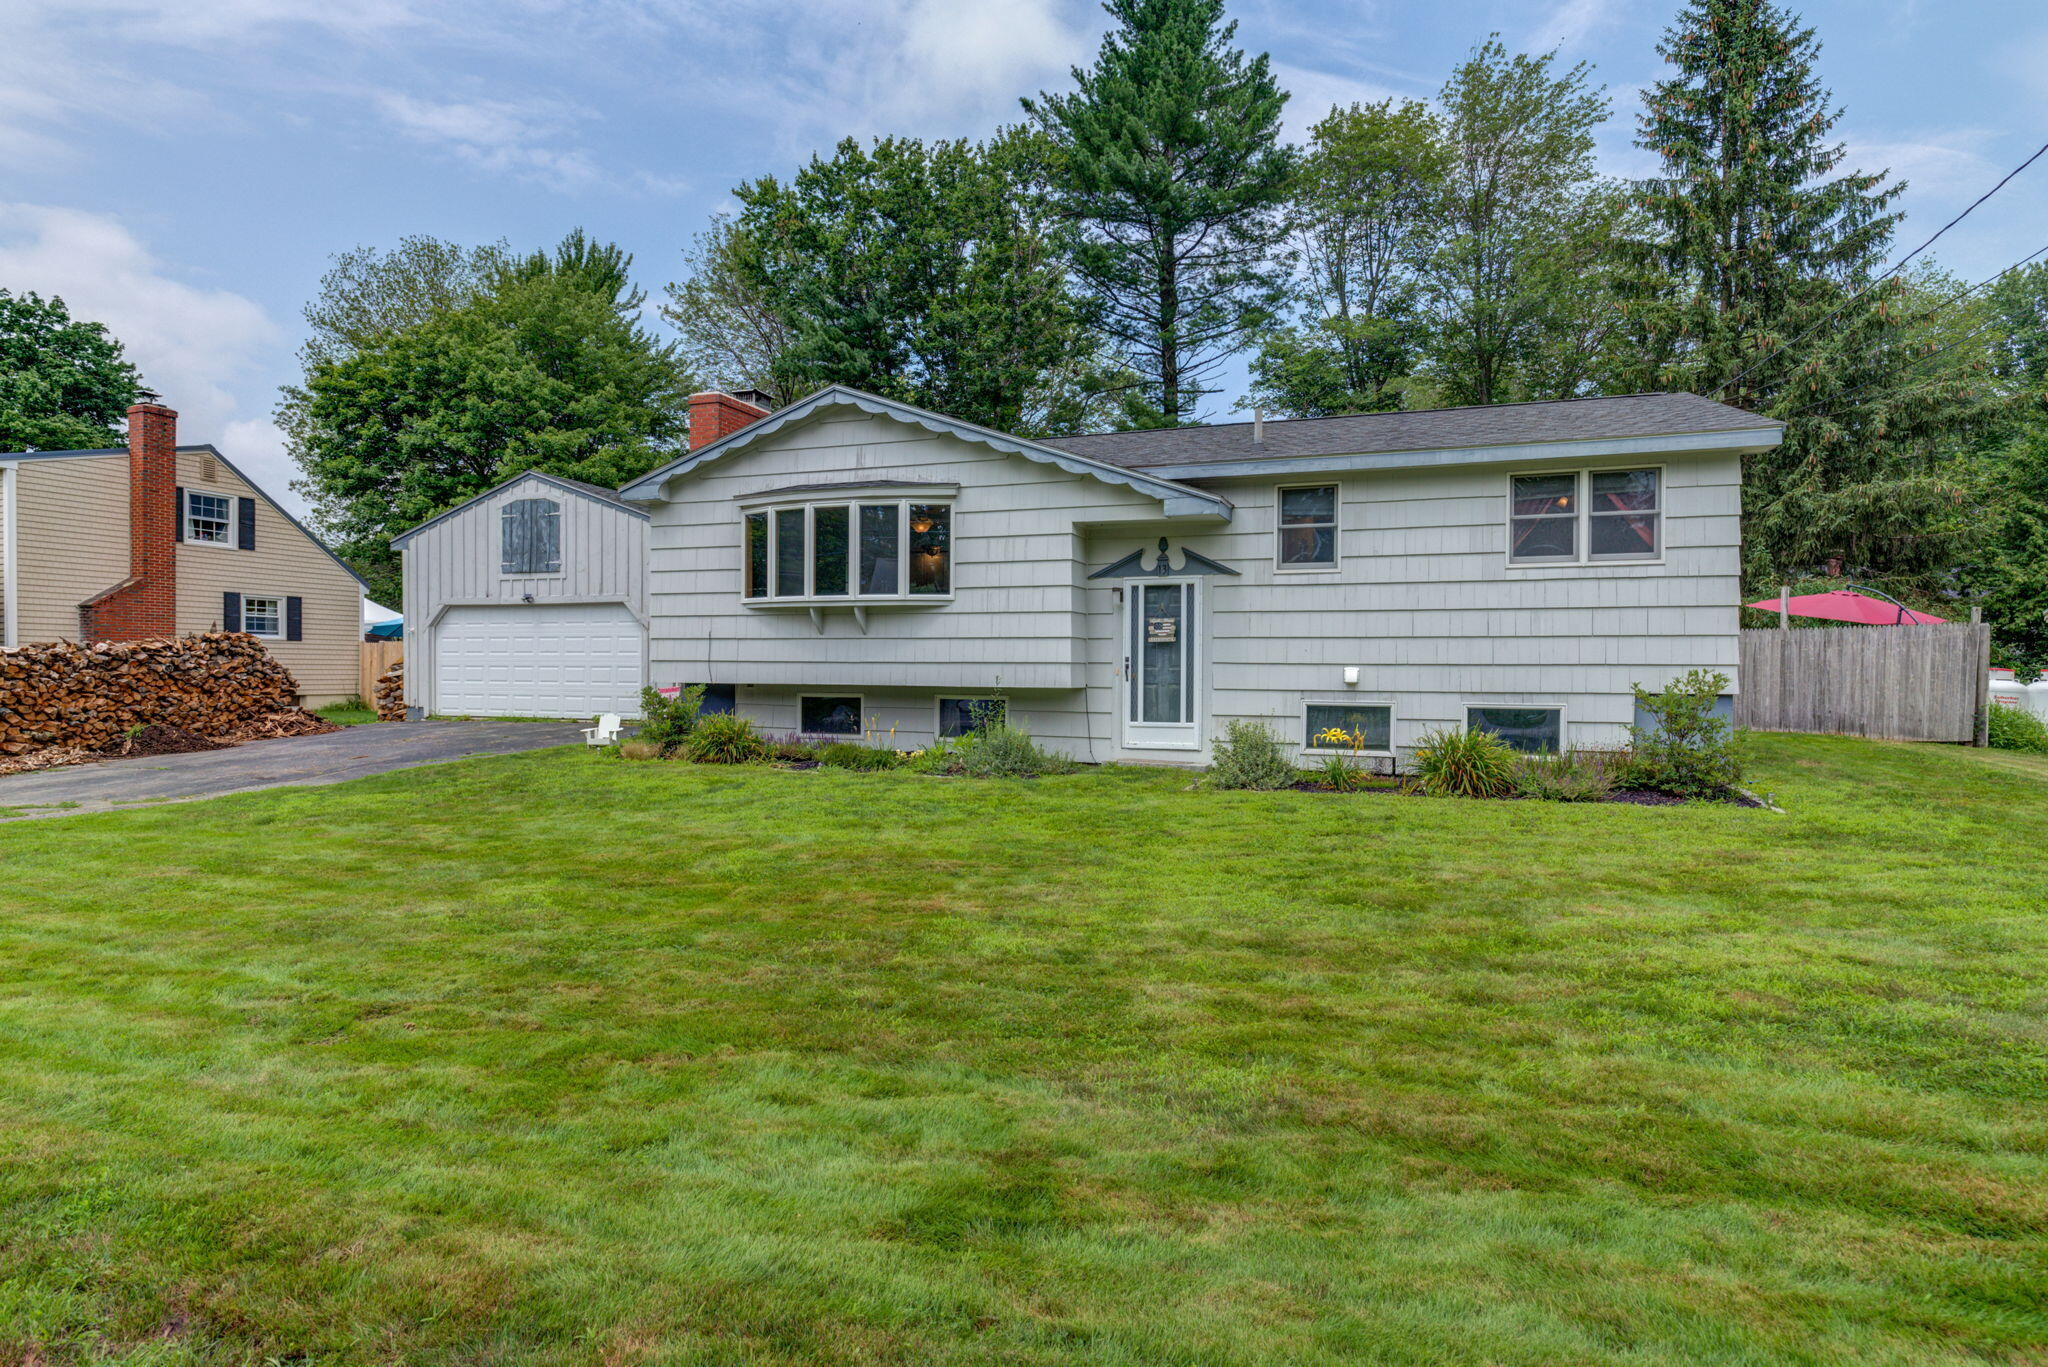 Main image for MLS listing 1501932